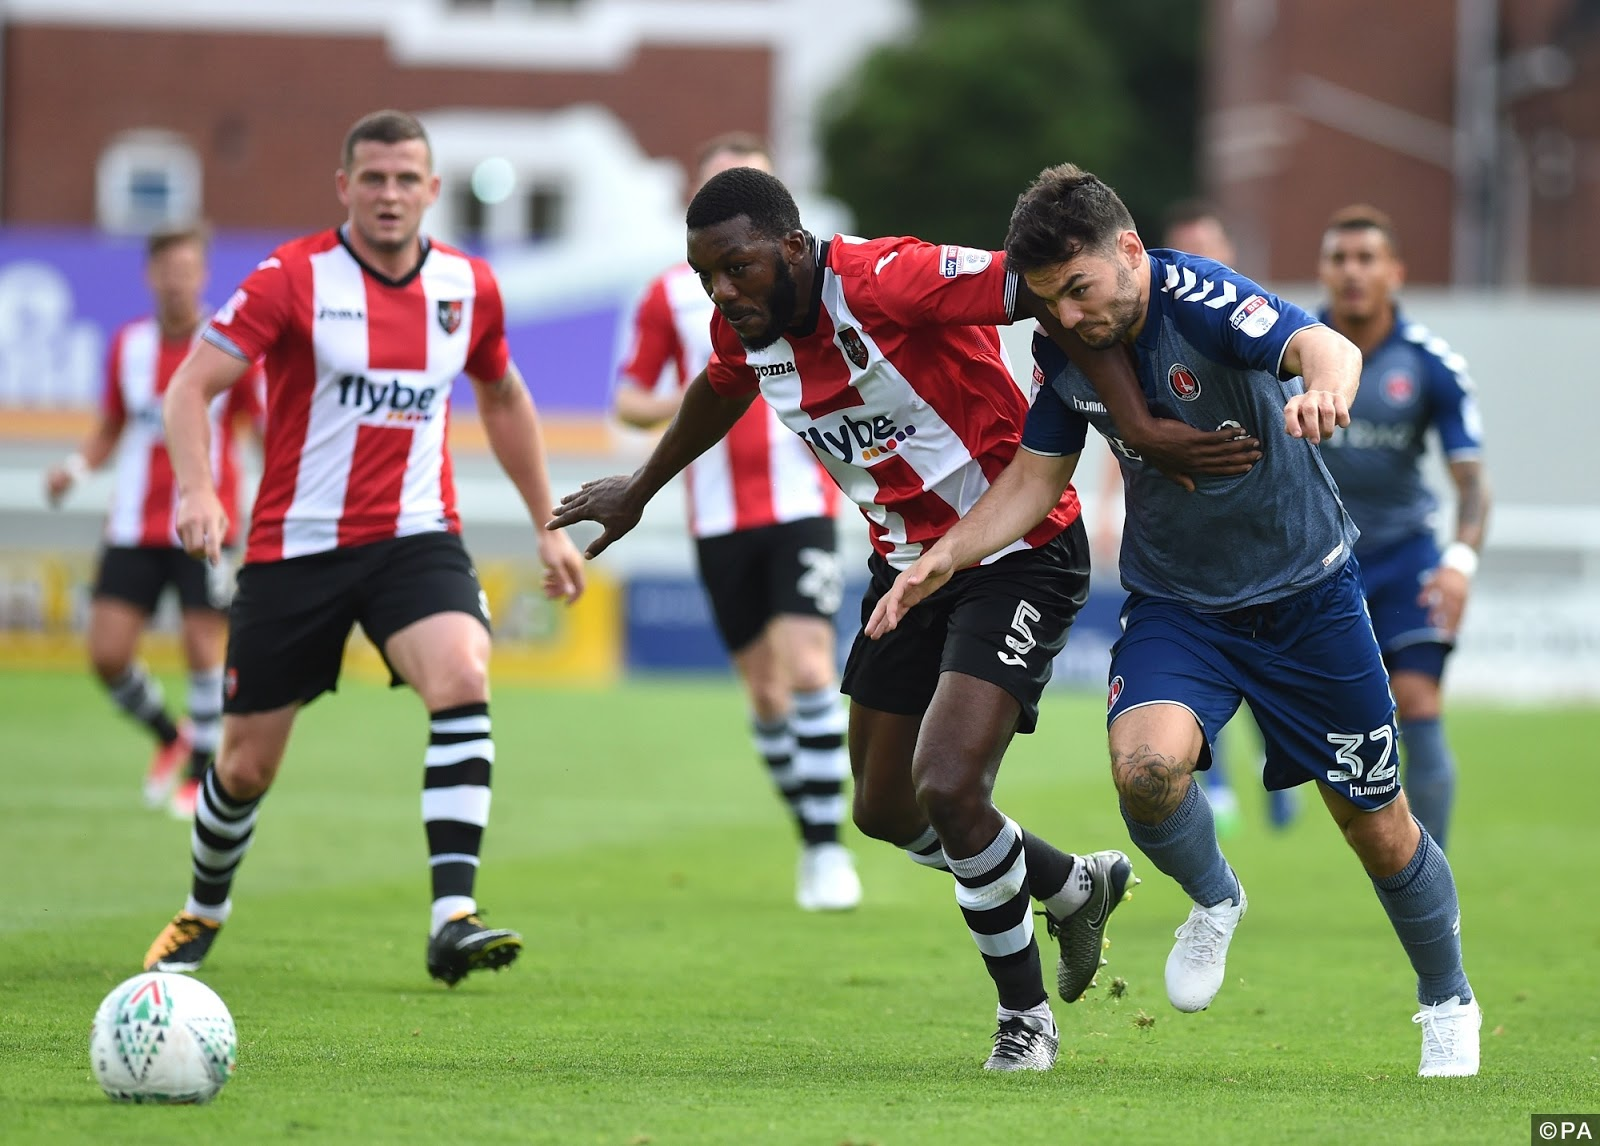 Prediksi Skor Exeter City Vs Chesterfield 18 April 2018